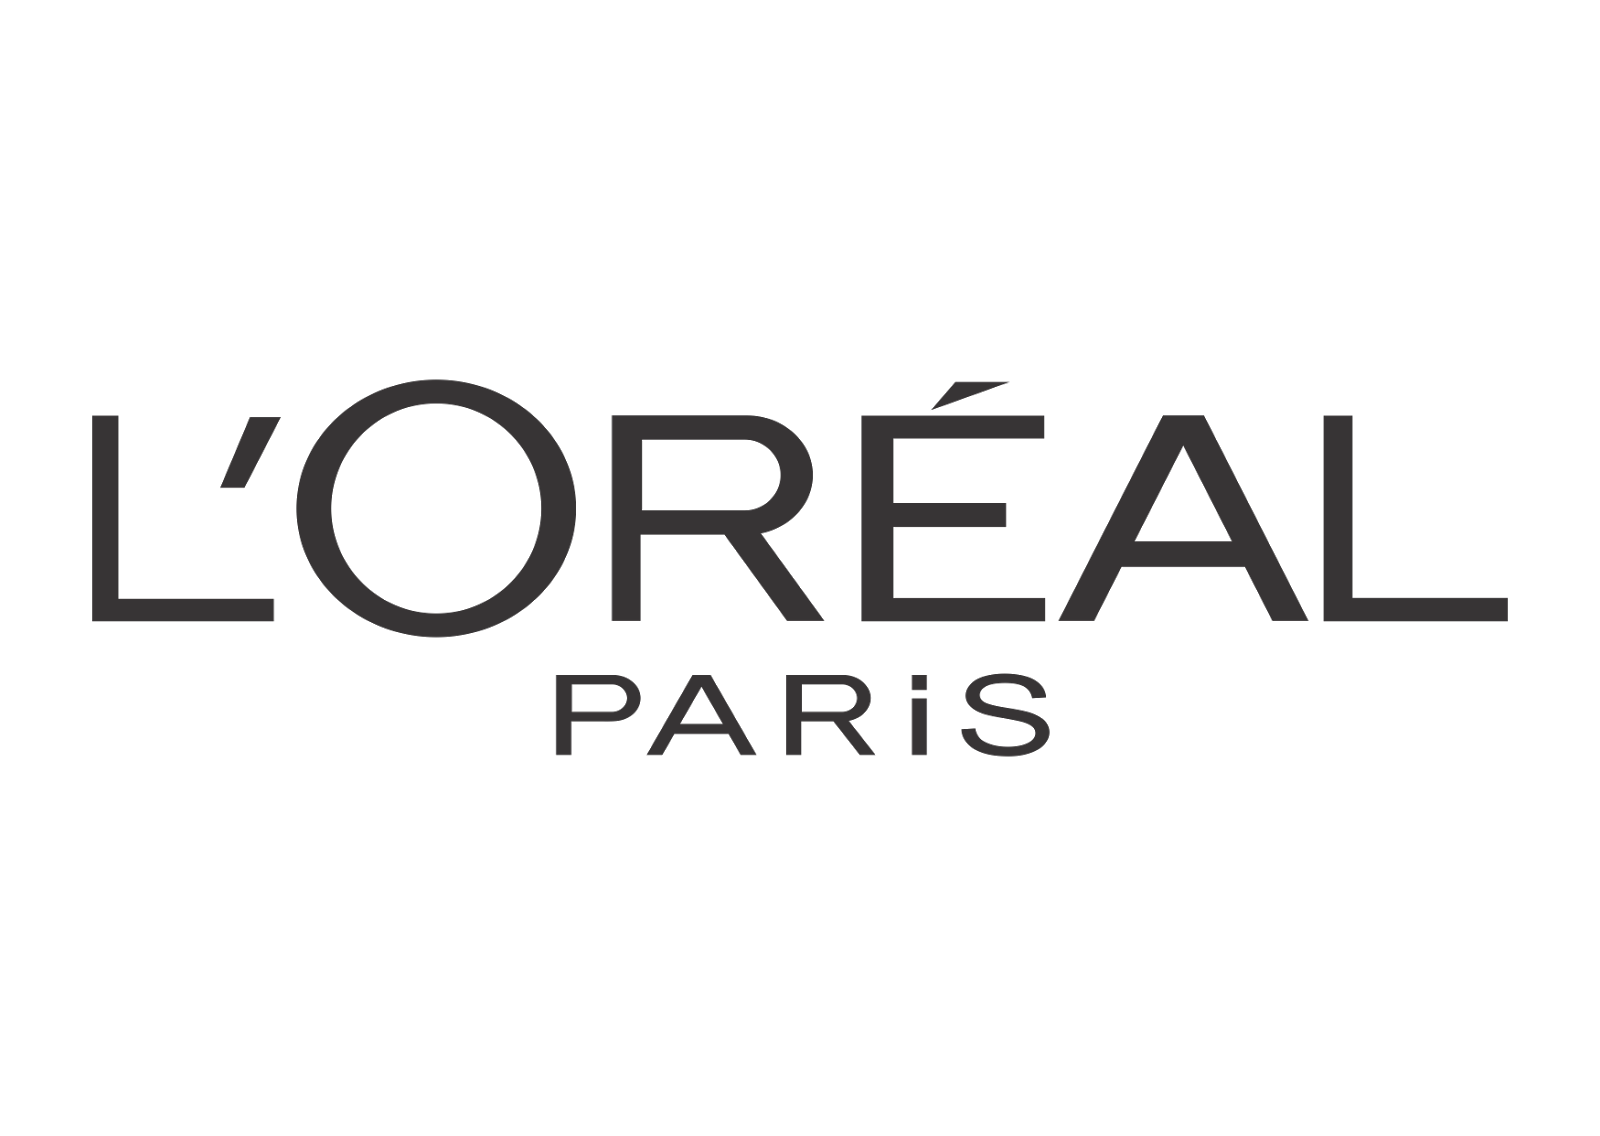 Download Loreal PNG Photos For Designing Projects 1.